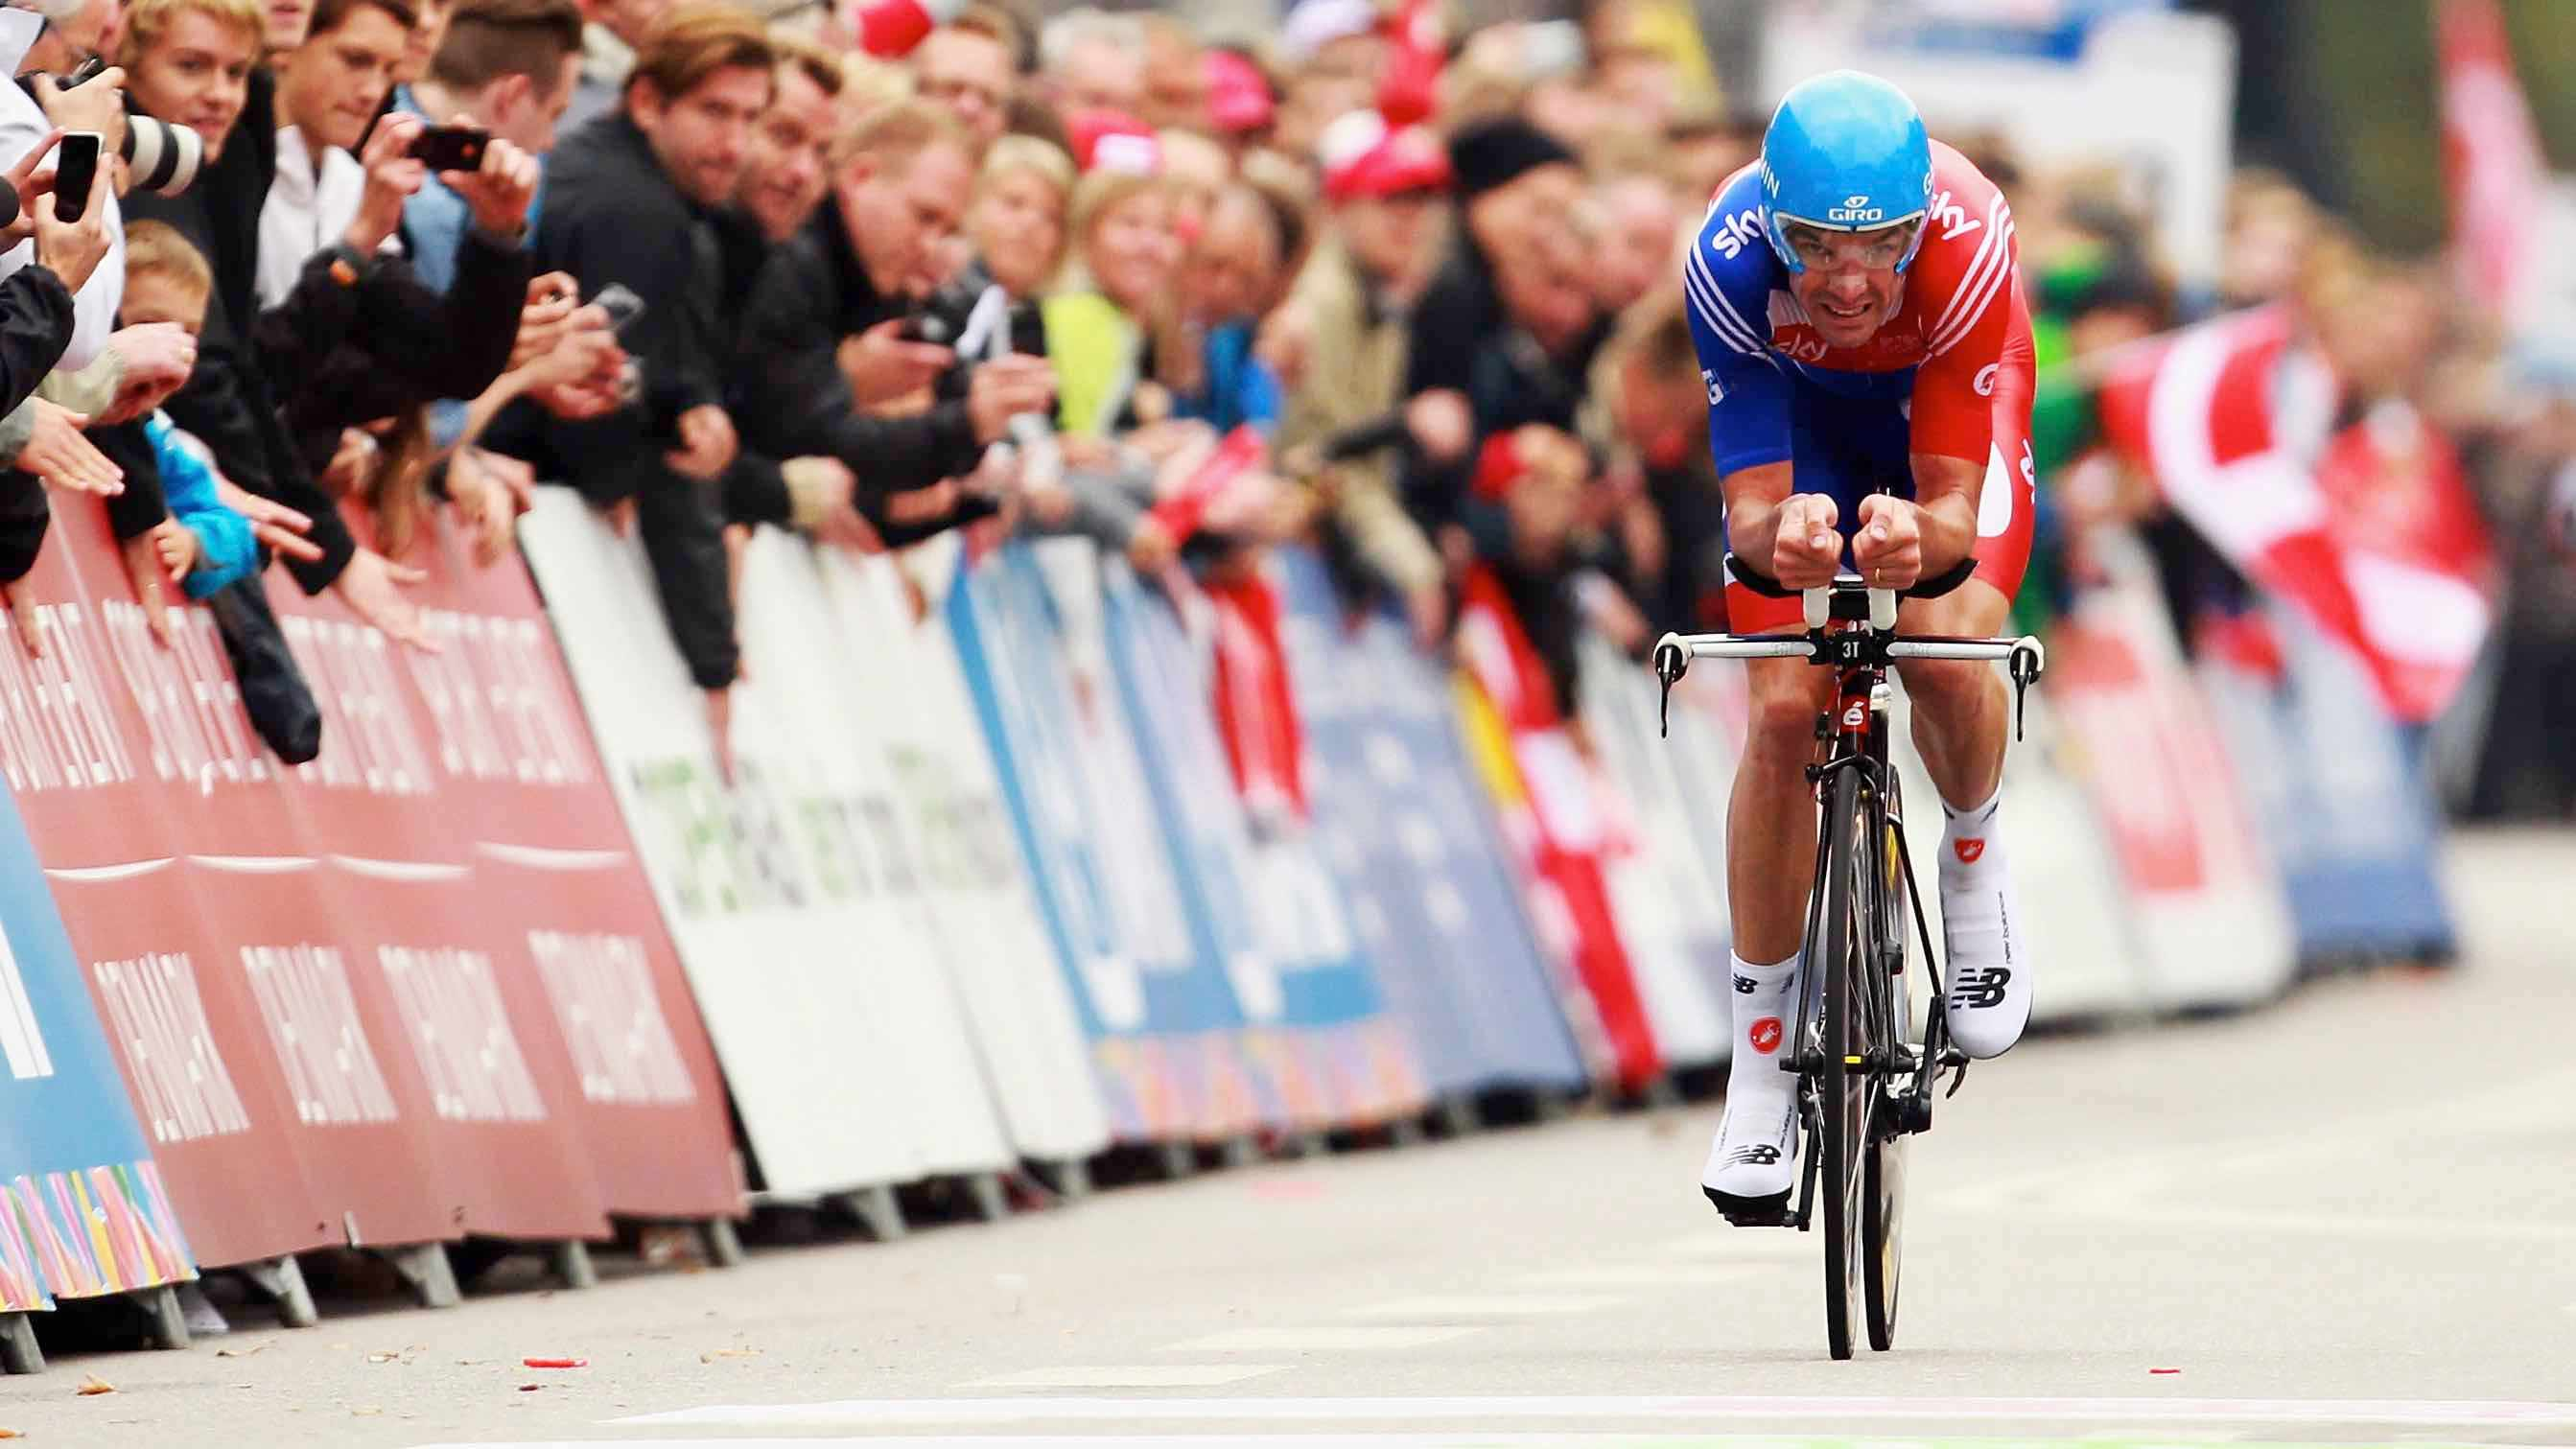 Time trialling is just you against the clock – and that's part of its appeal, says Millar